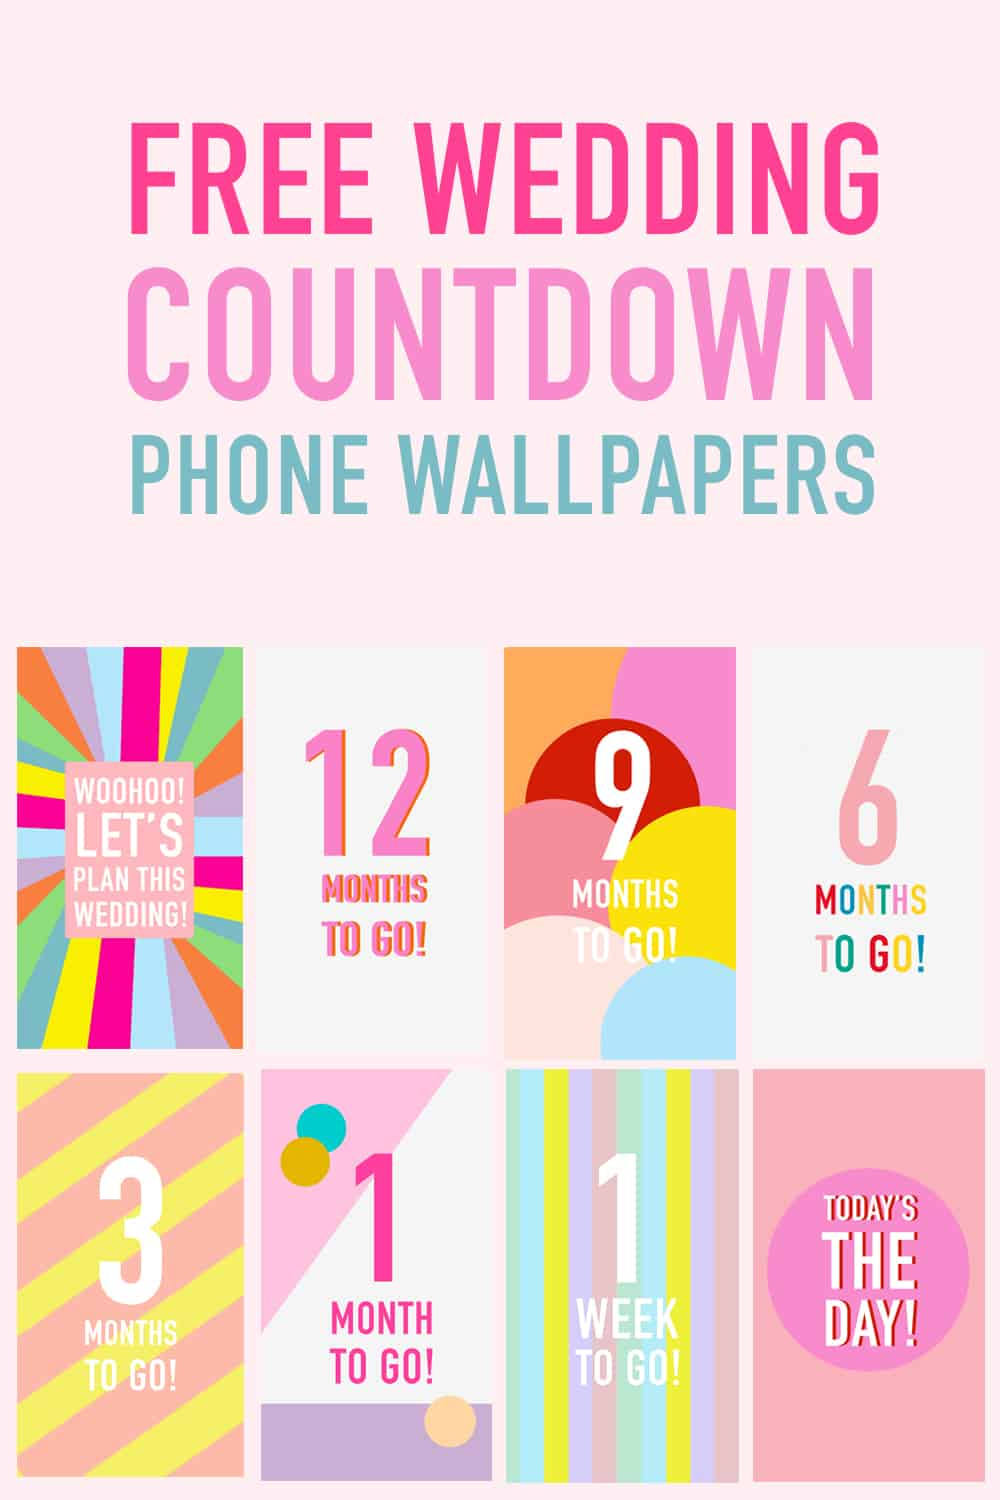 DOWNLOAD THESE FREE PHONE WALLPAPERS TO ...